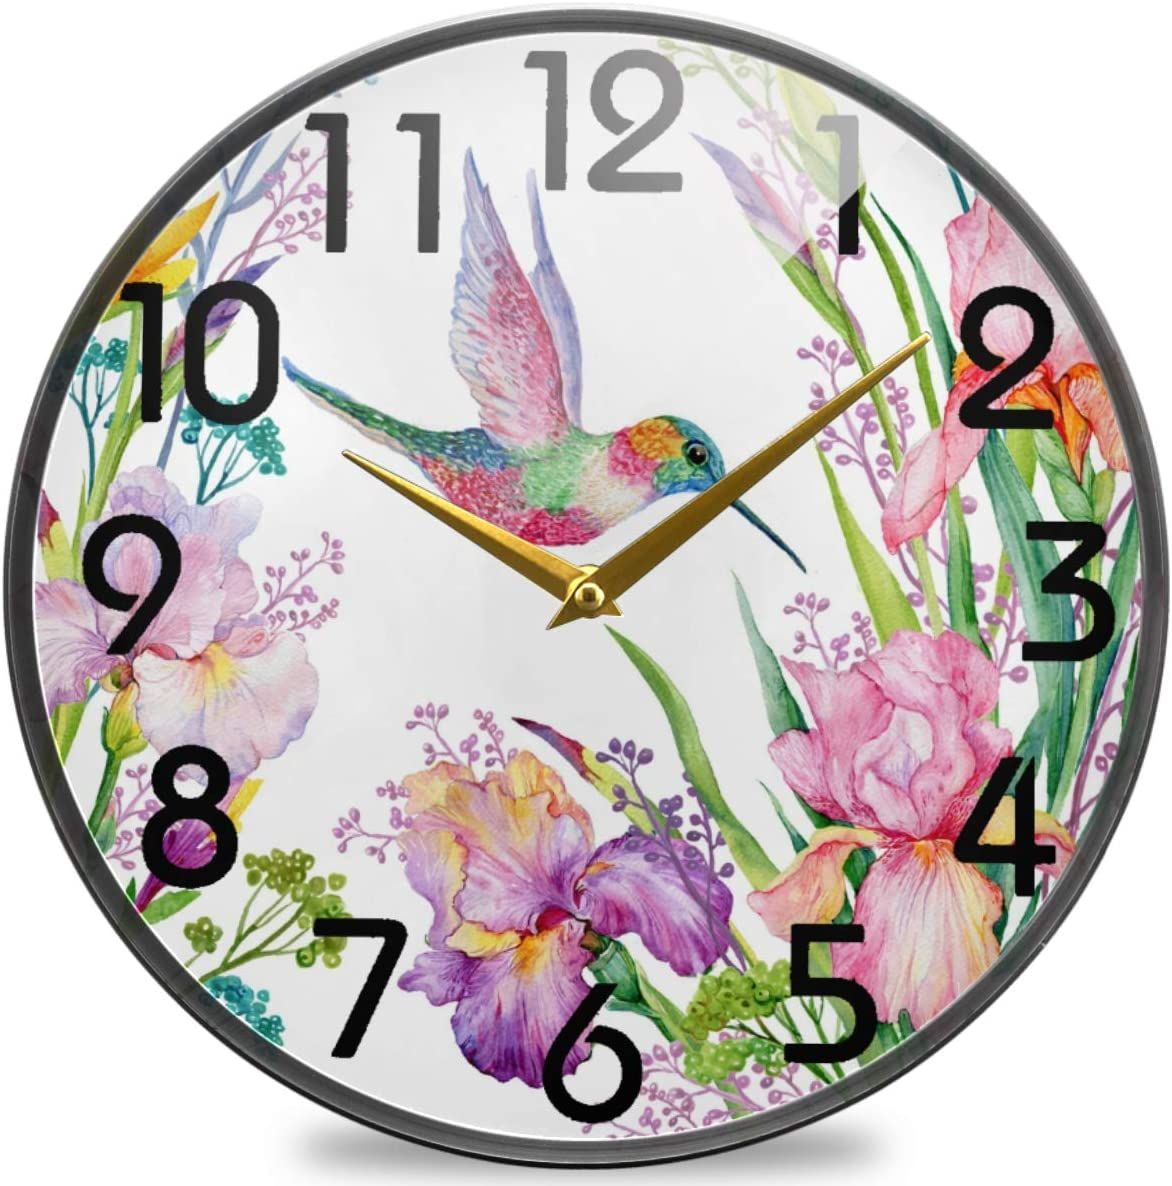 Naanle Spring Tropical Irises Flowers Hummingbirds Round Wall Clock, 9.5 Inch Silent Battery Operated Quartz Analog Quiet Desk Clock for Home,Office,School